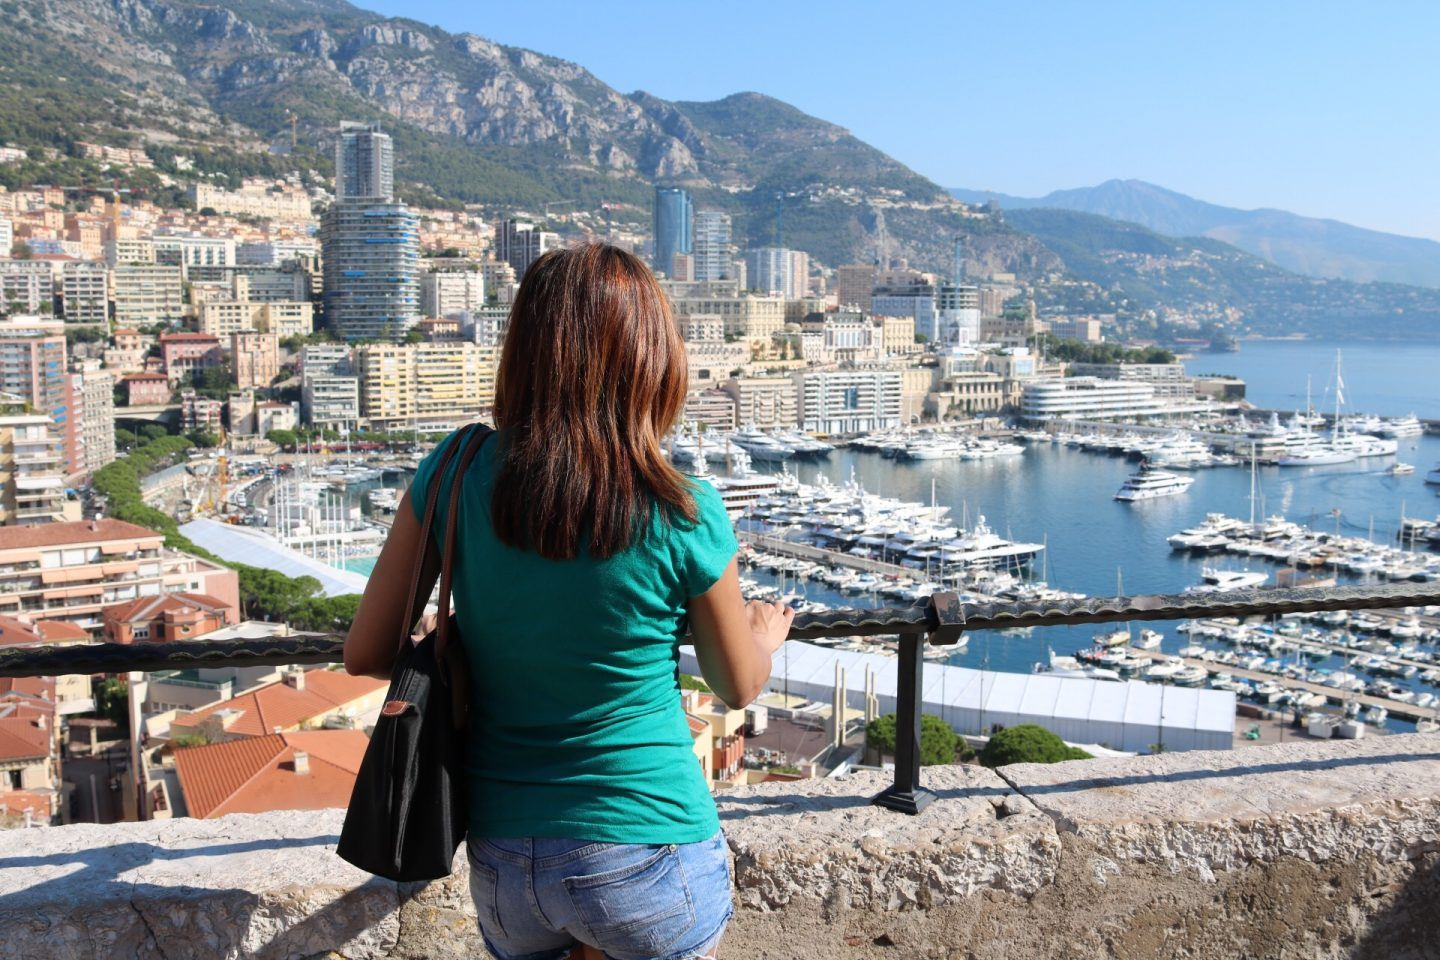 5 things to do in a day in Monaco